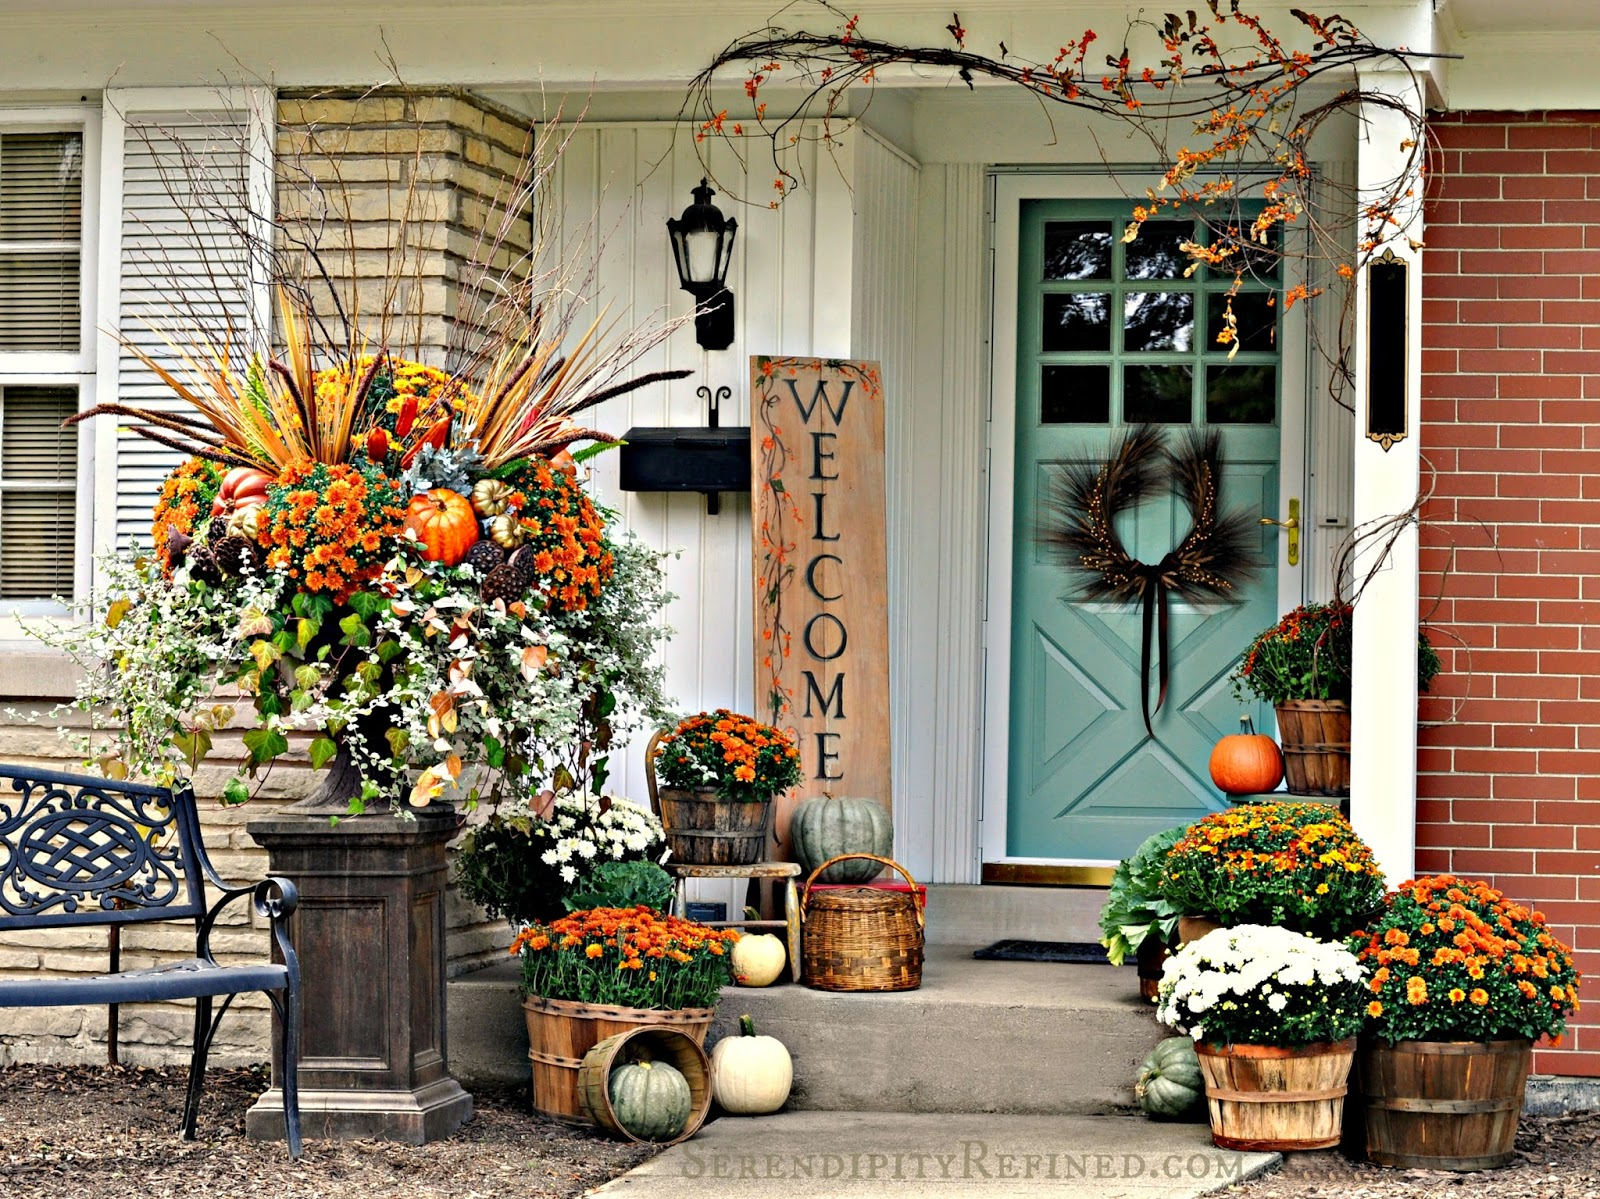 Fabulous outdoor decorating tips and ideas for fall zing blog by quicken loans zing blog by - Outdoor decorating ideas ...